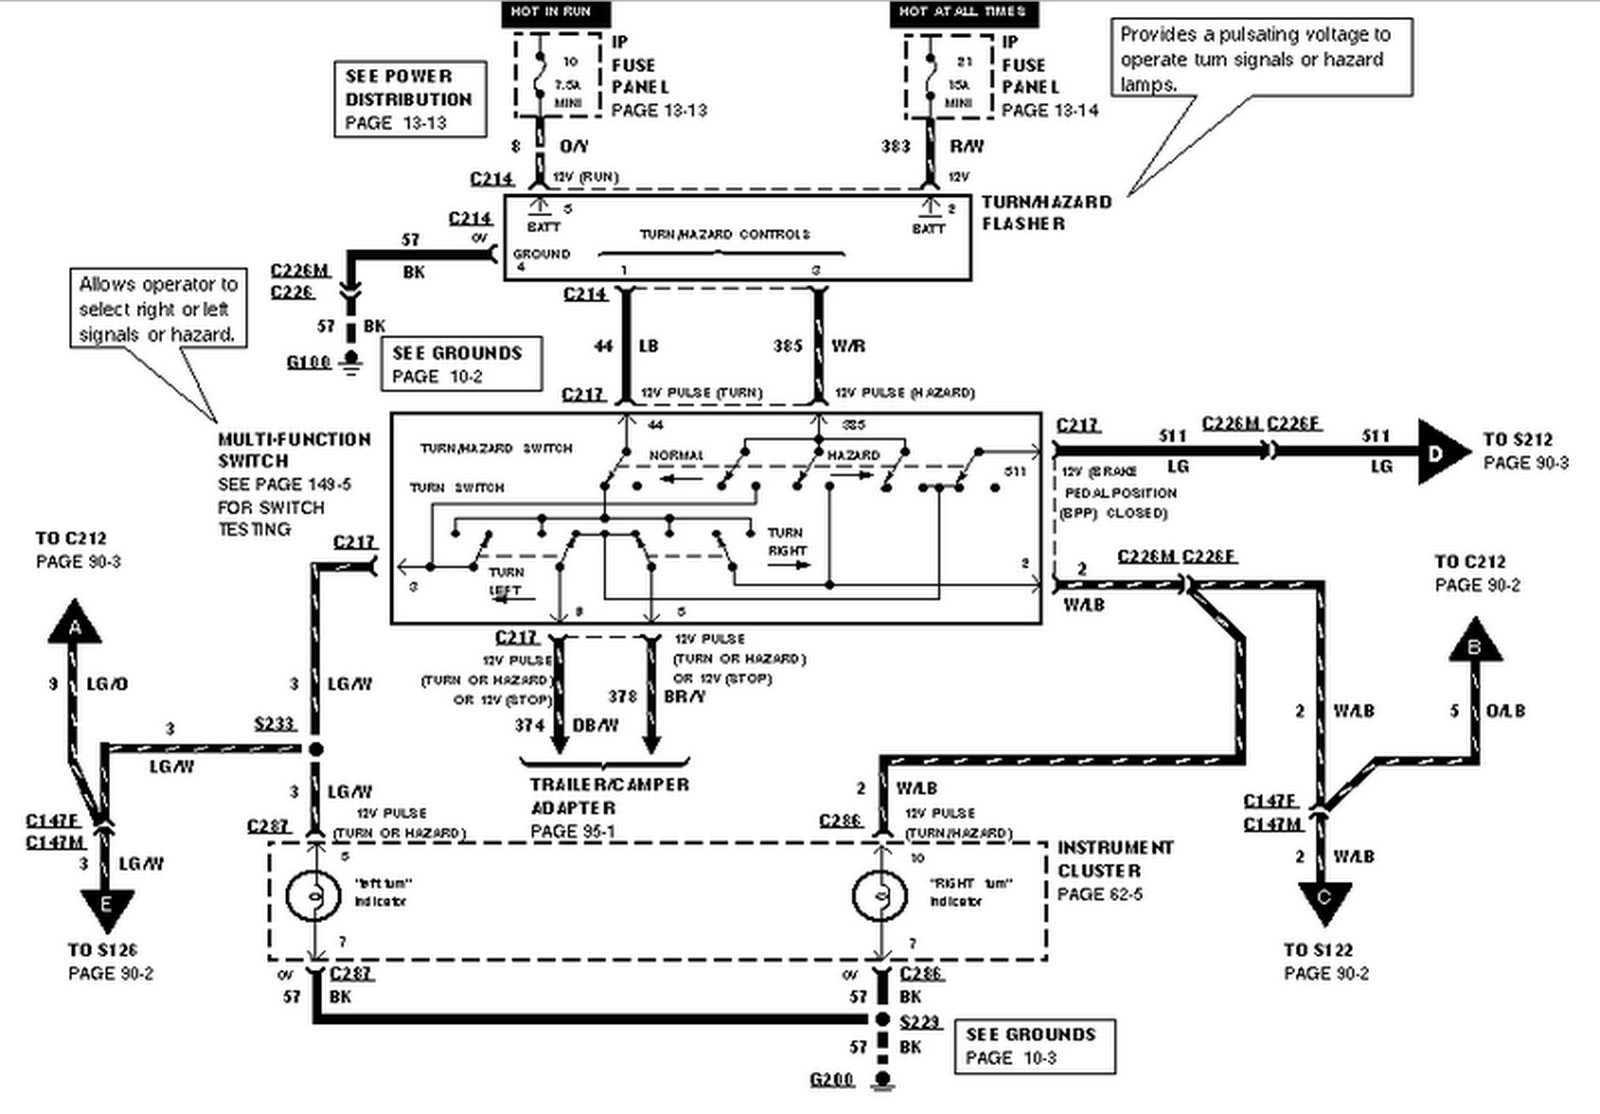 1998 Ford Expedition Wiring Diagram from static.cargurus.com